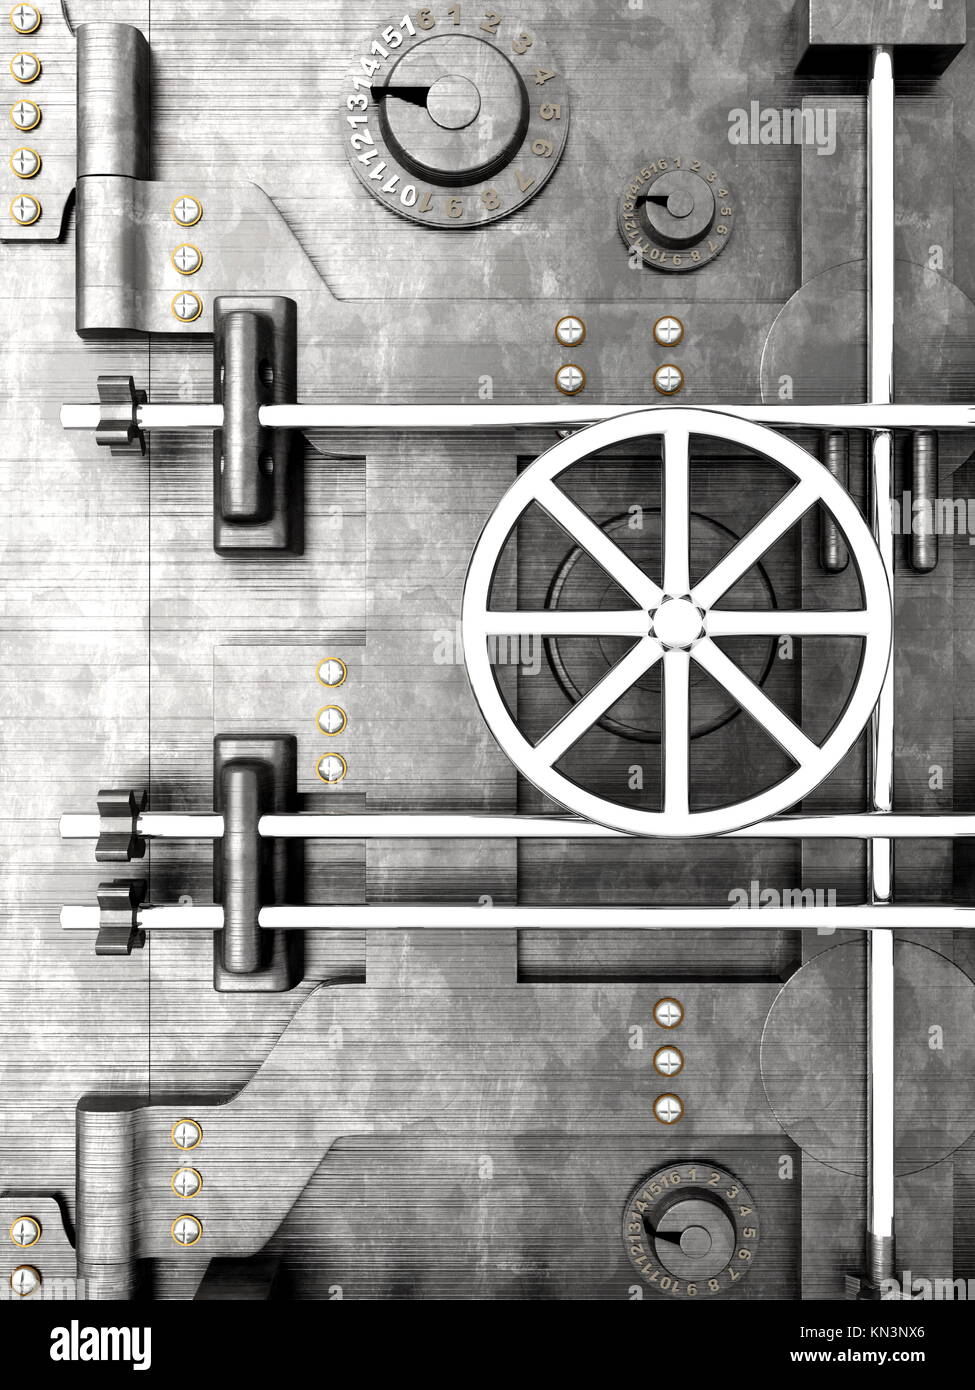 3D rendered Illustration. A bank vault door. - Stock Image